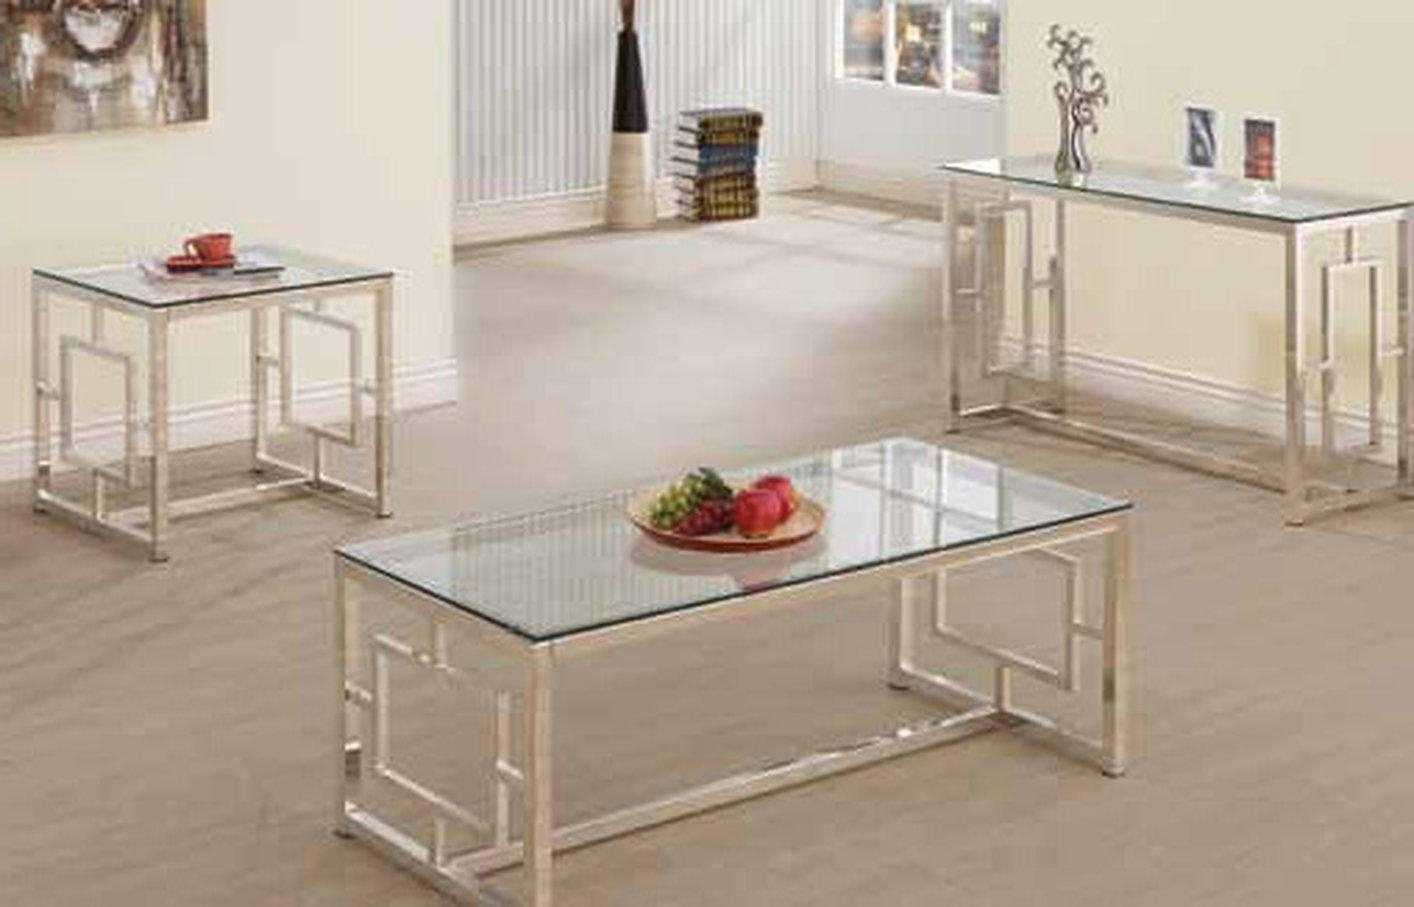 Glass Sofa Table Indoor | Med Art Home Design Posters Regarding Metal Glass Sofa Tables (Image 5 of 22)